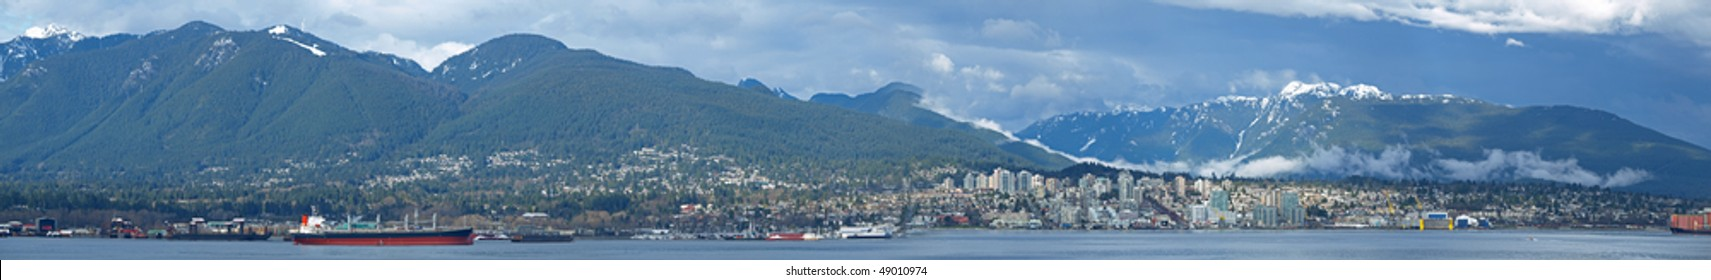 Extra High Resolution Panorama Image of North Vancouver in a Cloudy Day